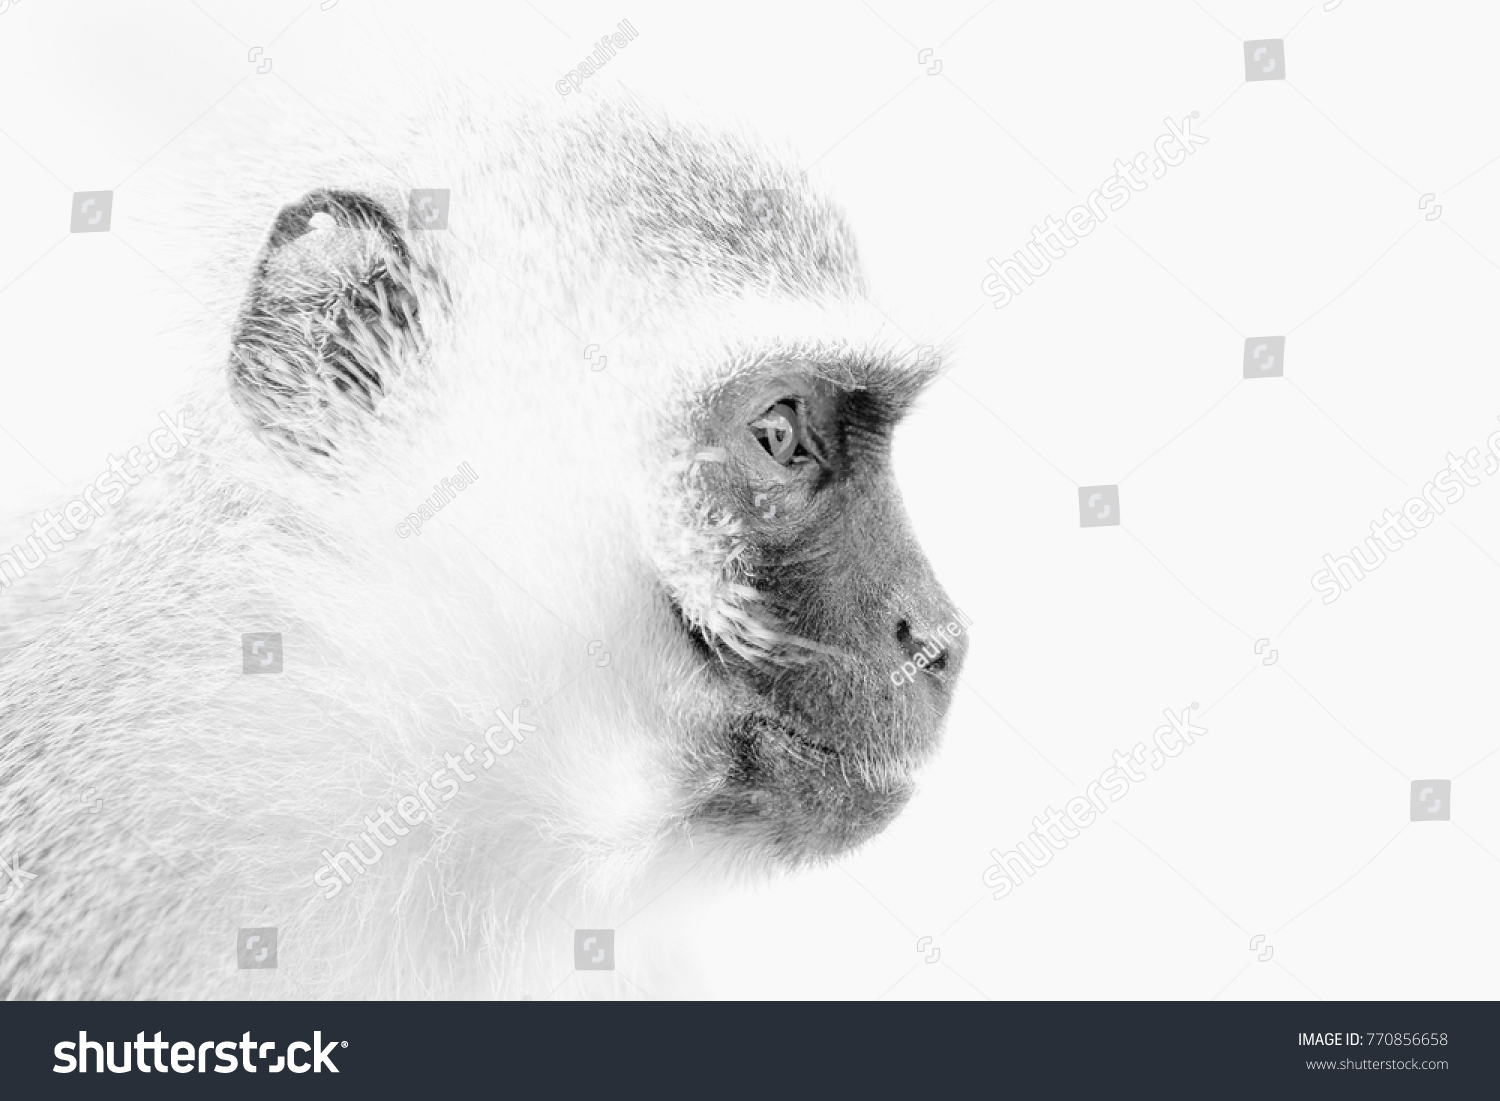 stock-photo-closeup-of-a-vervet-monkey-i